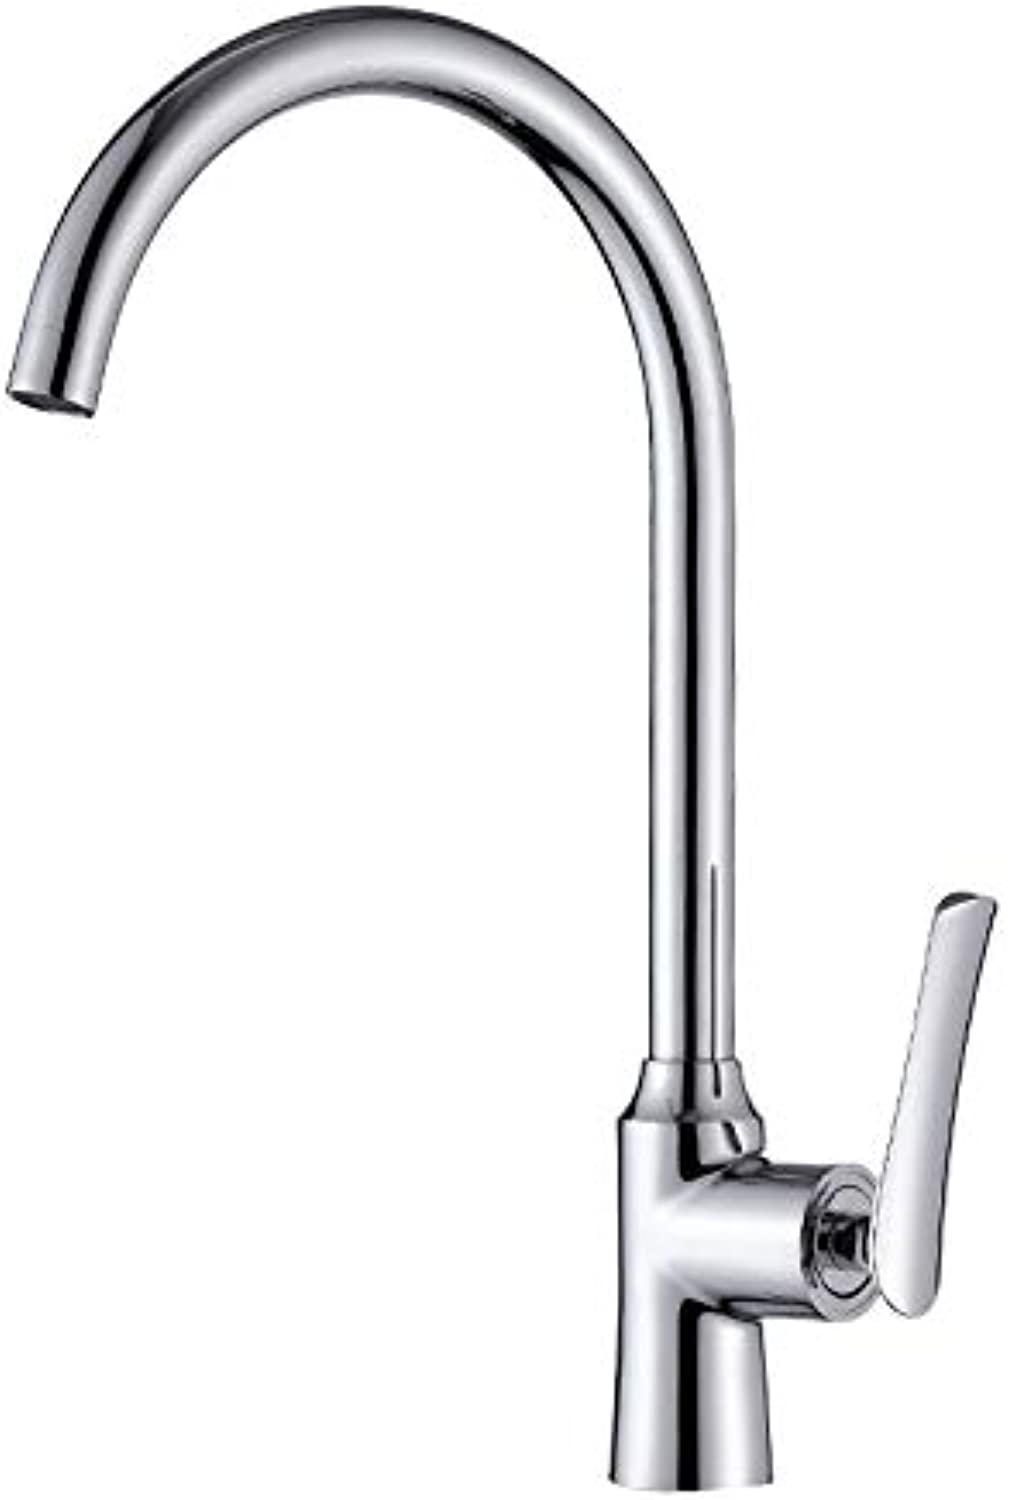 304 Stainless Steel Flat Three-Way Sink Faucet Hot and Cold Water Vientiane Tube Kitchen Sink Faucet